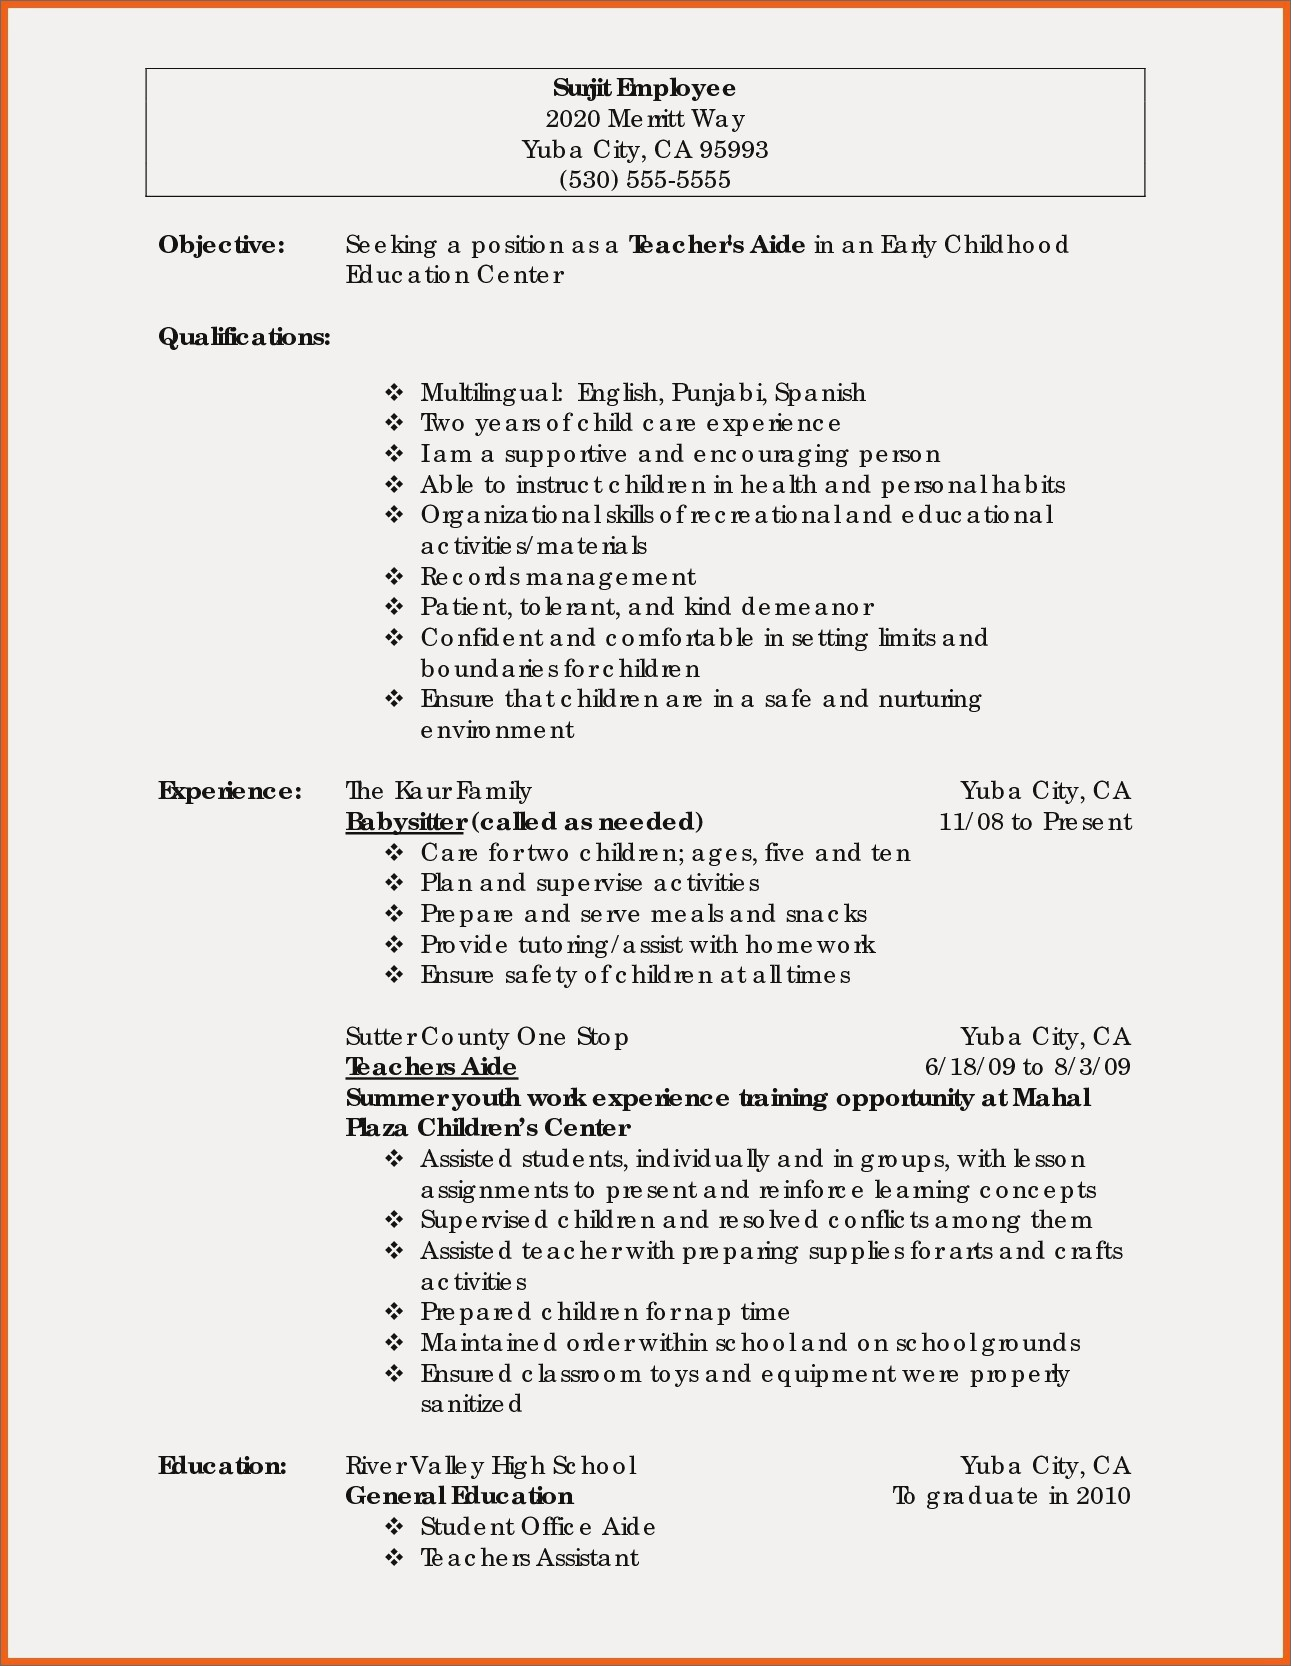 child resume template example-Early Childhood Education Resume Samples New Teacher Resume Example Awesome Resume Examples 0d Skills Examples 19-p